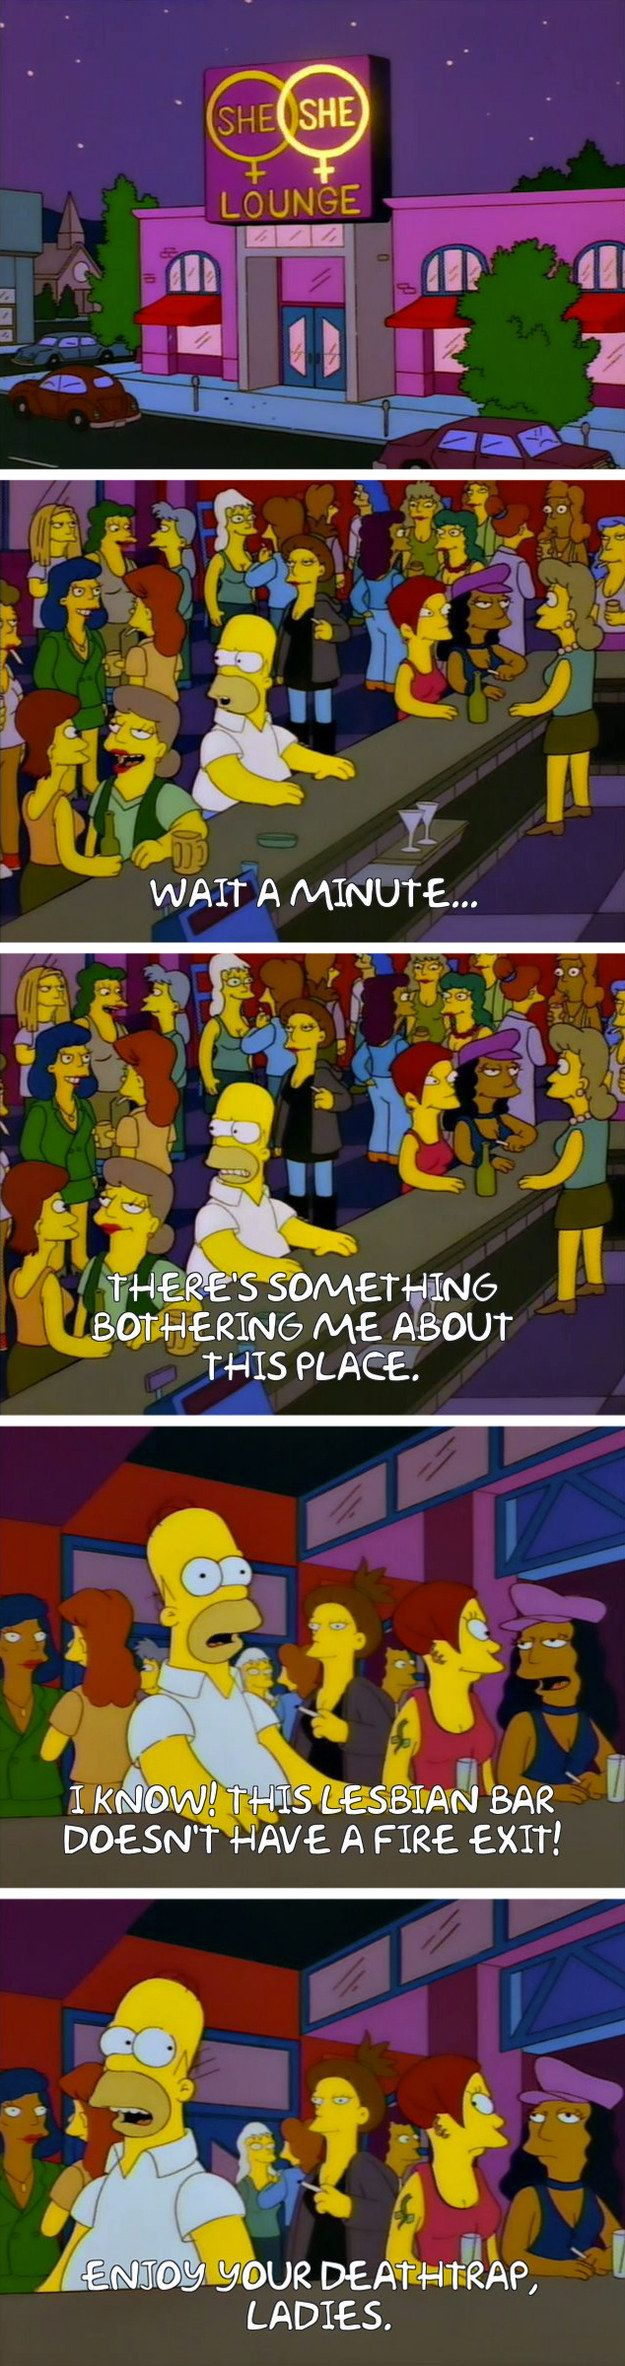 """From """"Fear of Flying"""": 